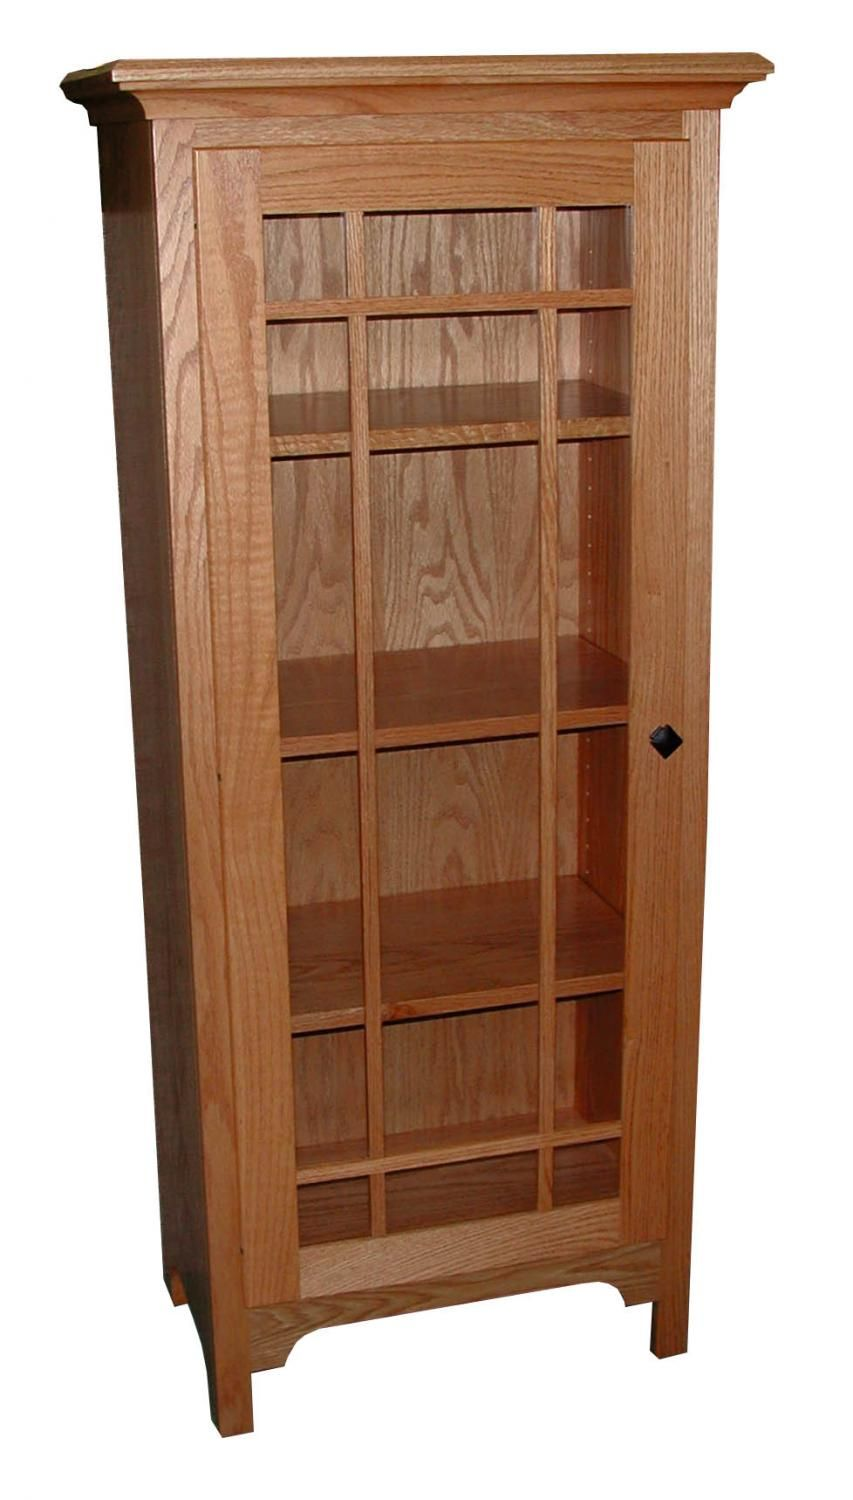 Jakeu0027s Amish Furniture   Small Shaker Bookcase With Glass Door